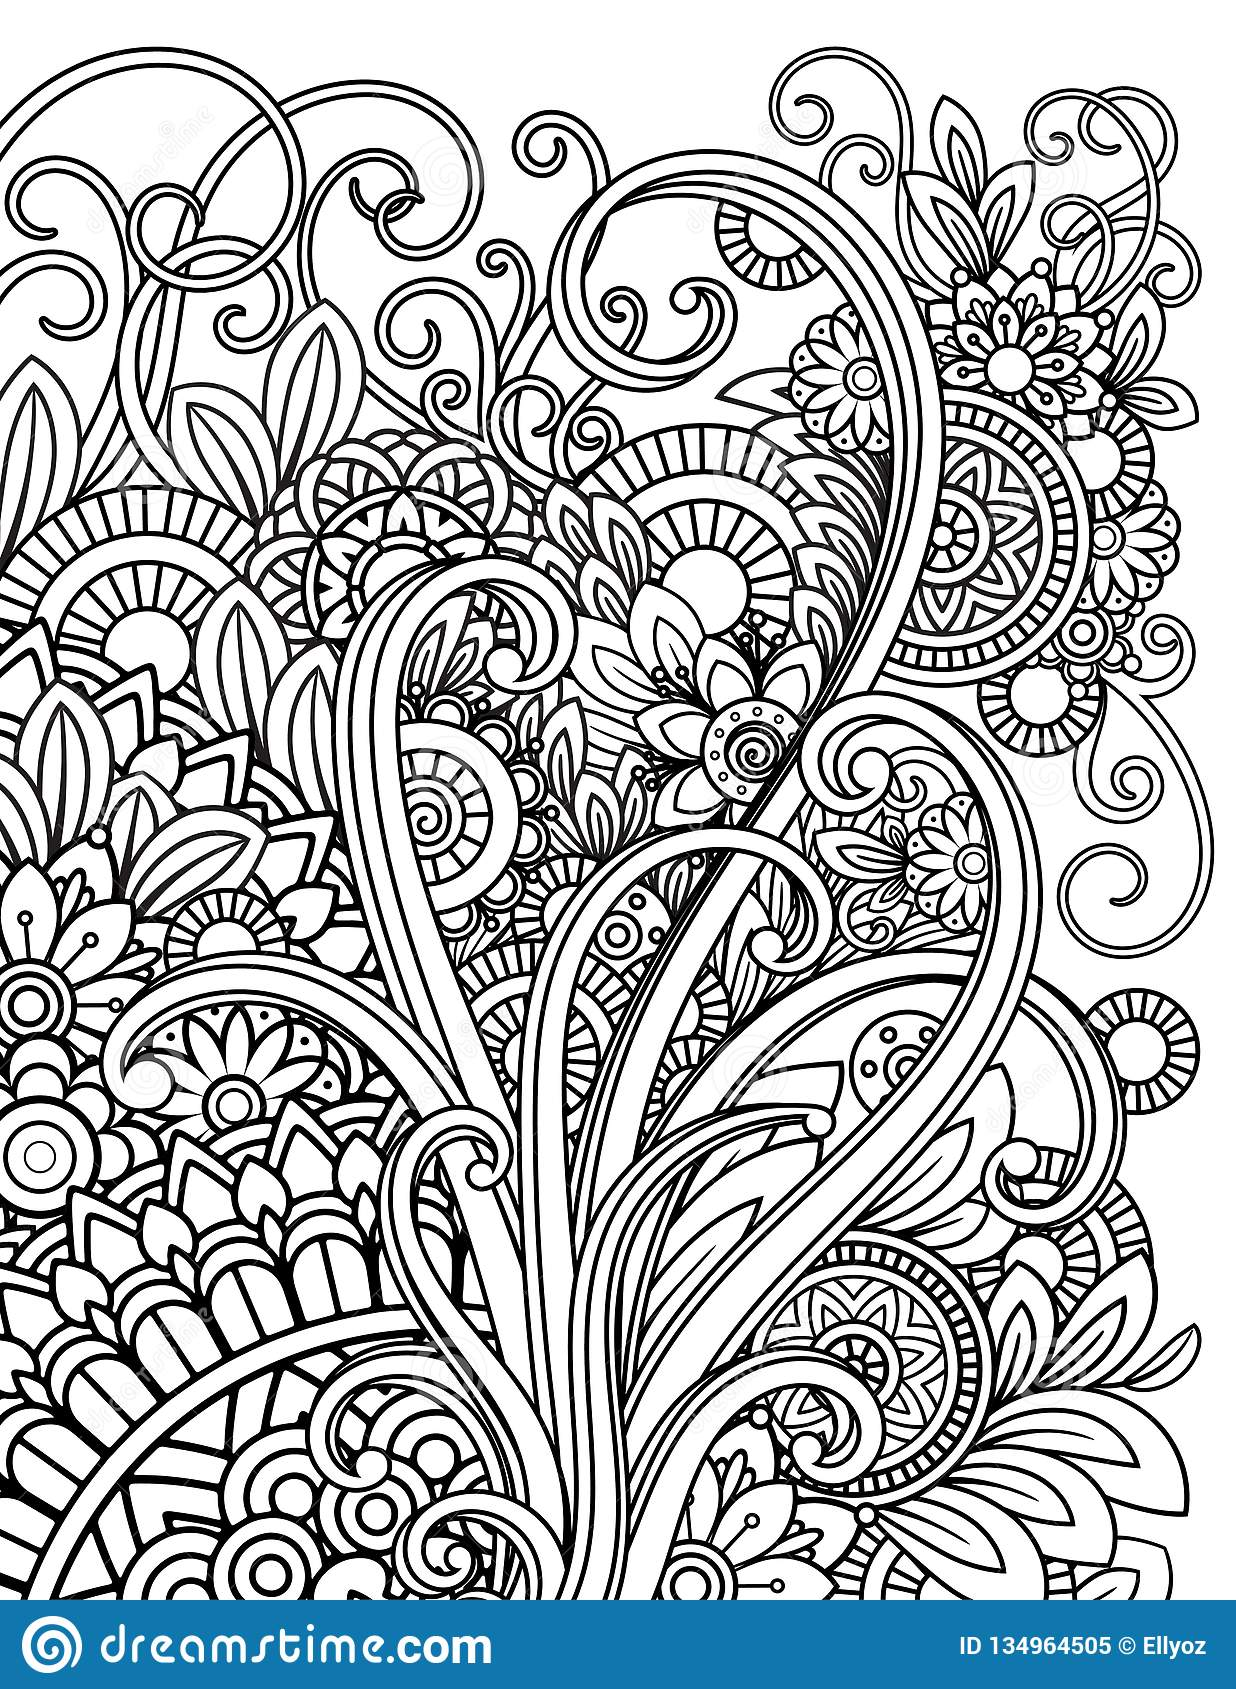 Mandala Adult Coloring Pages Stock Vector Illustration Of Page Doodle 134964505